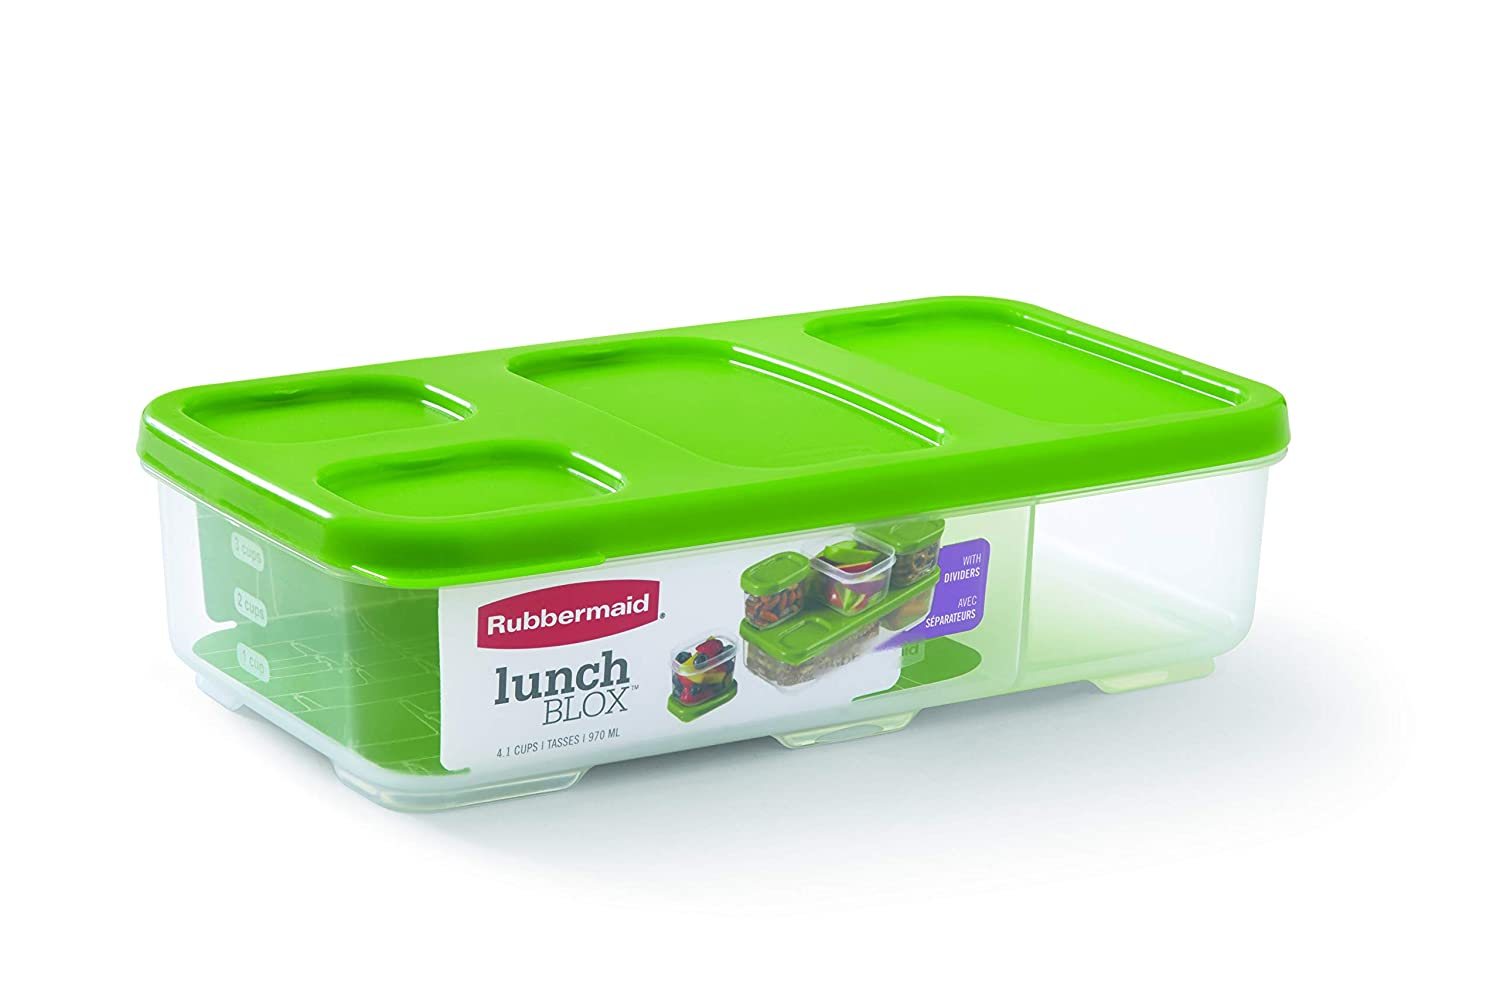 Rubbermaid Entree Container with Dividers and Lid, Green 1806178